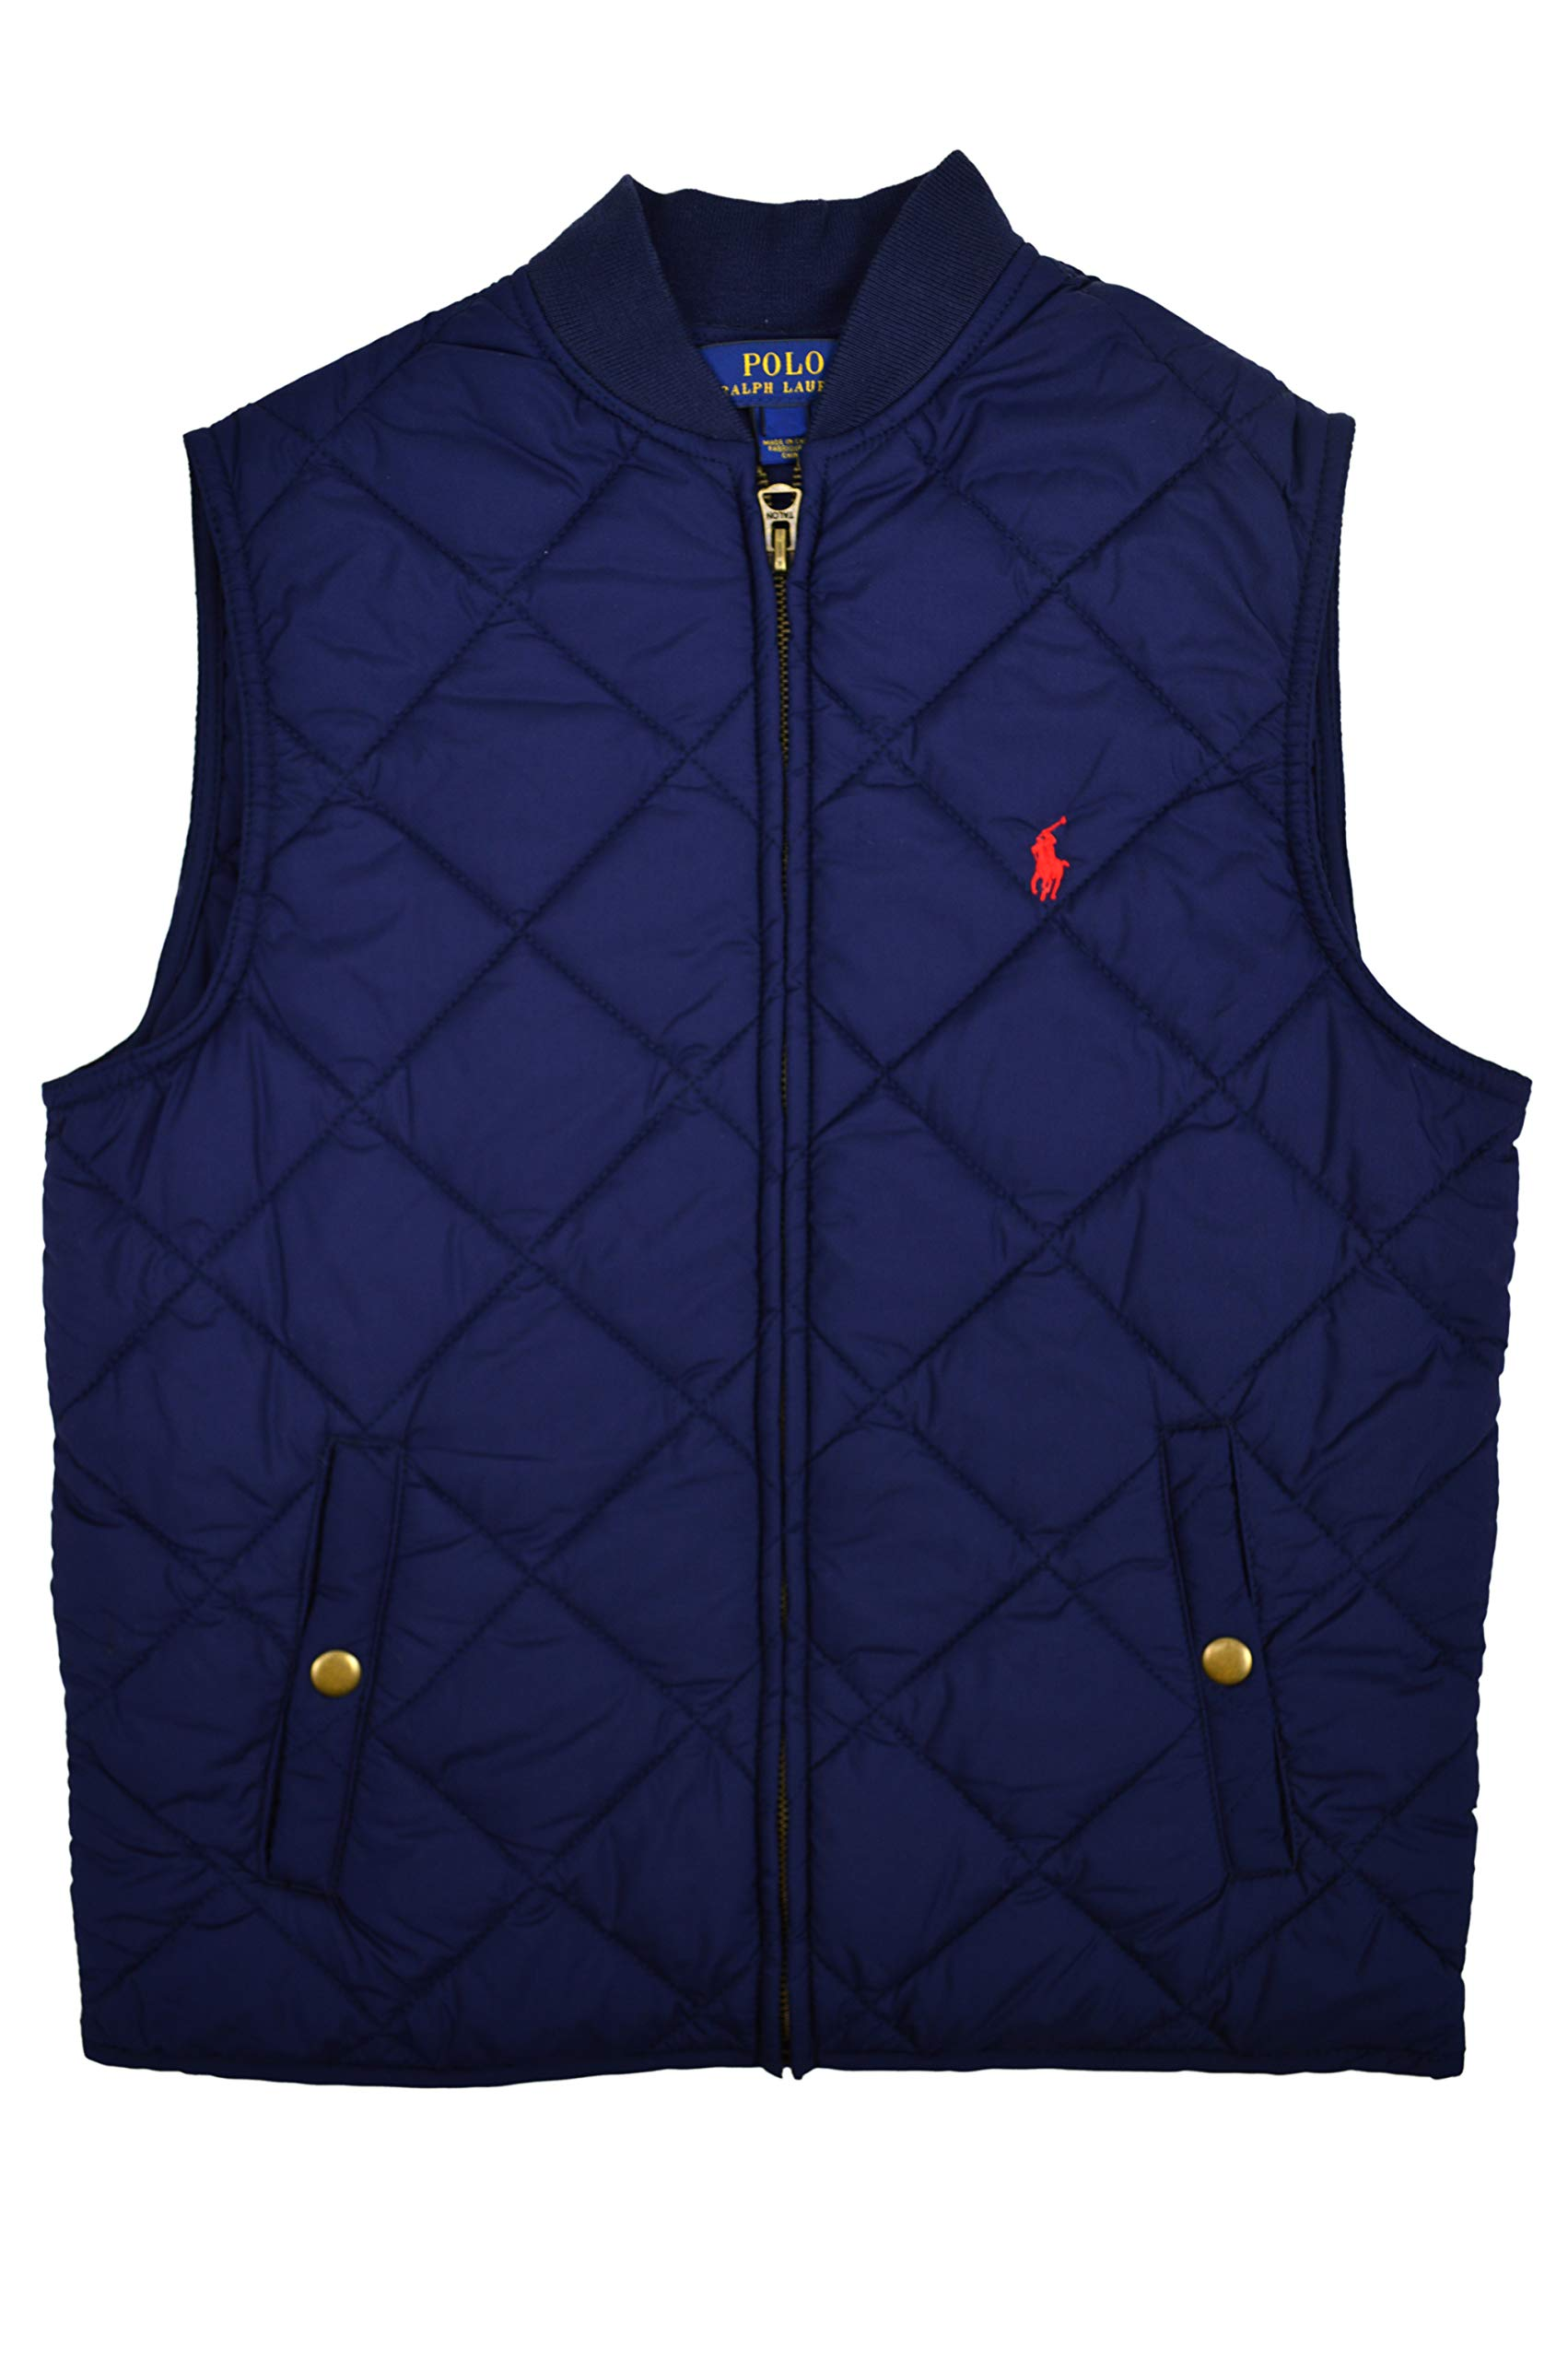 Polo Ralph Lauren Boys Diamond Quilted Vest, French Navy Blue (M (10-12)) by Polo Ralph Lauren